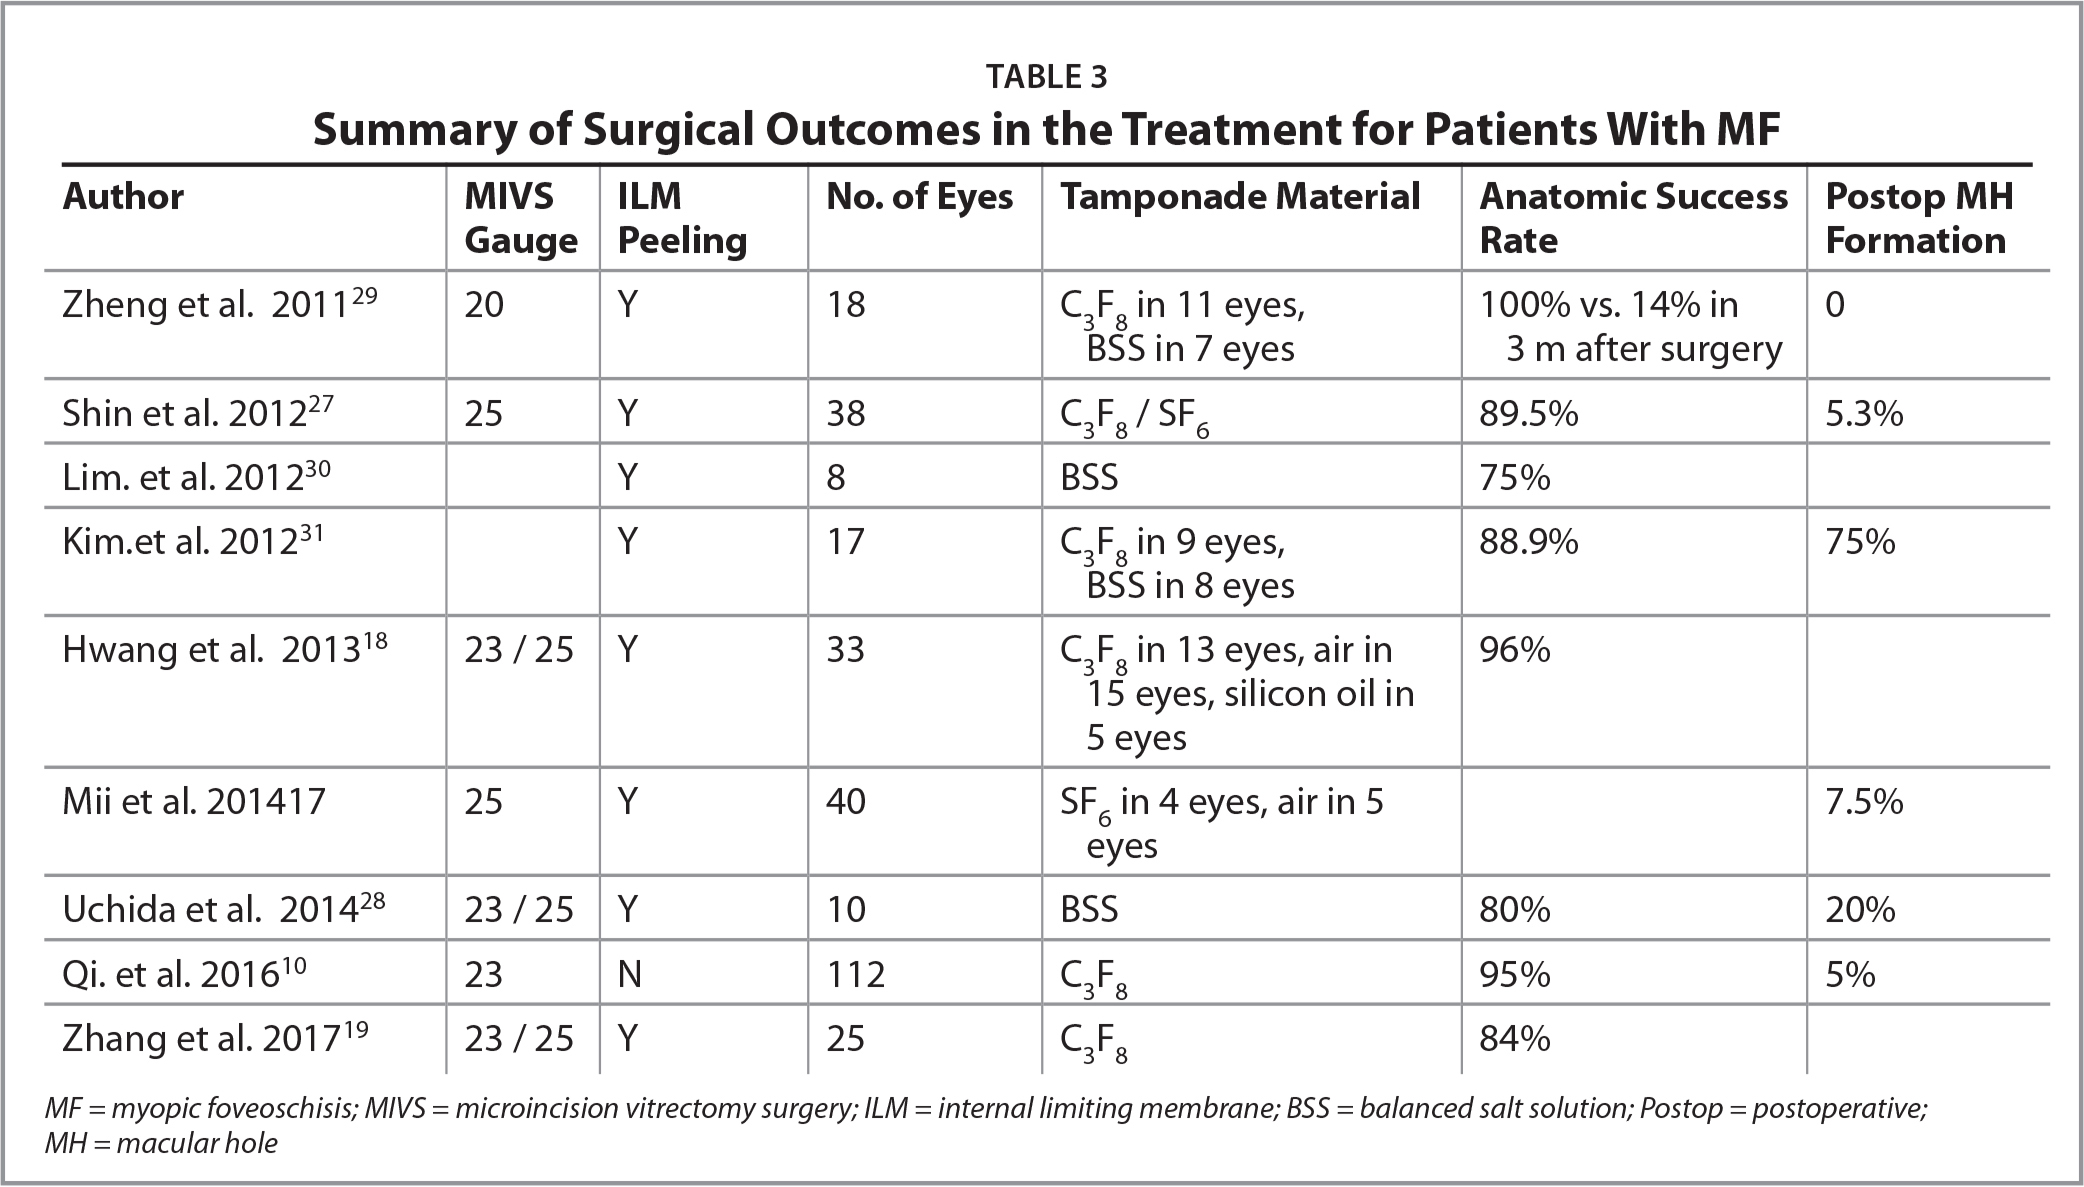 Summary of Surgical Outcomes in the Treatment for Patients With MF